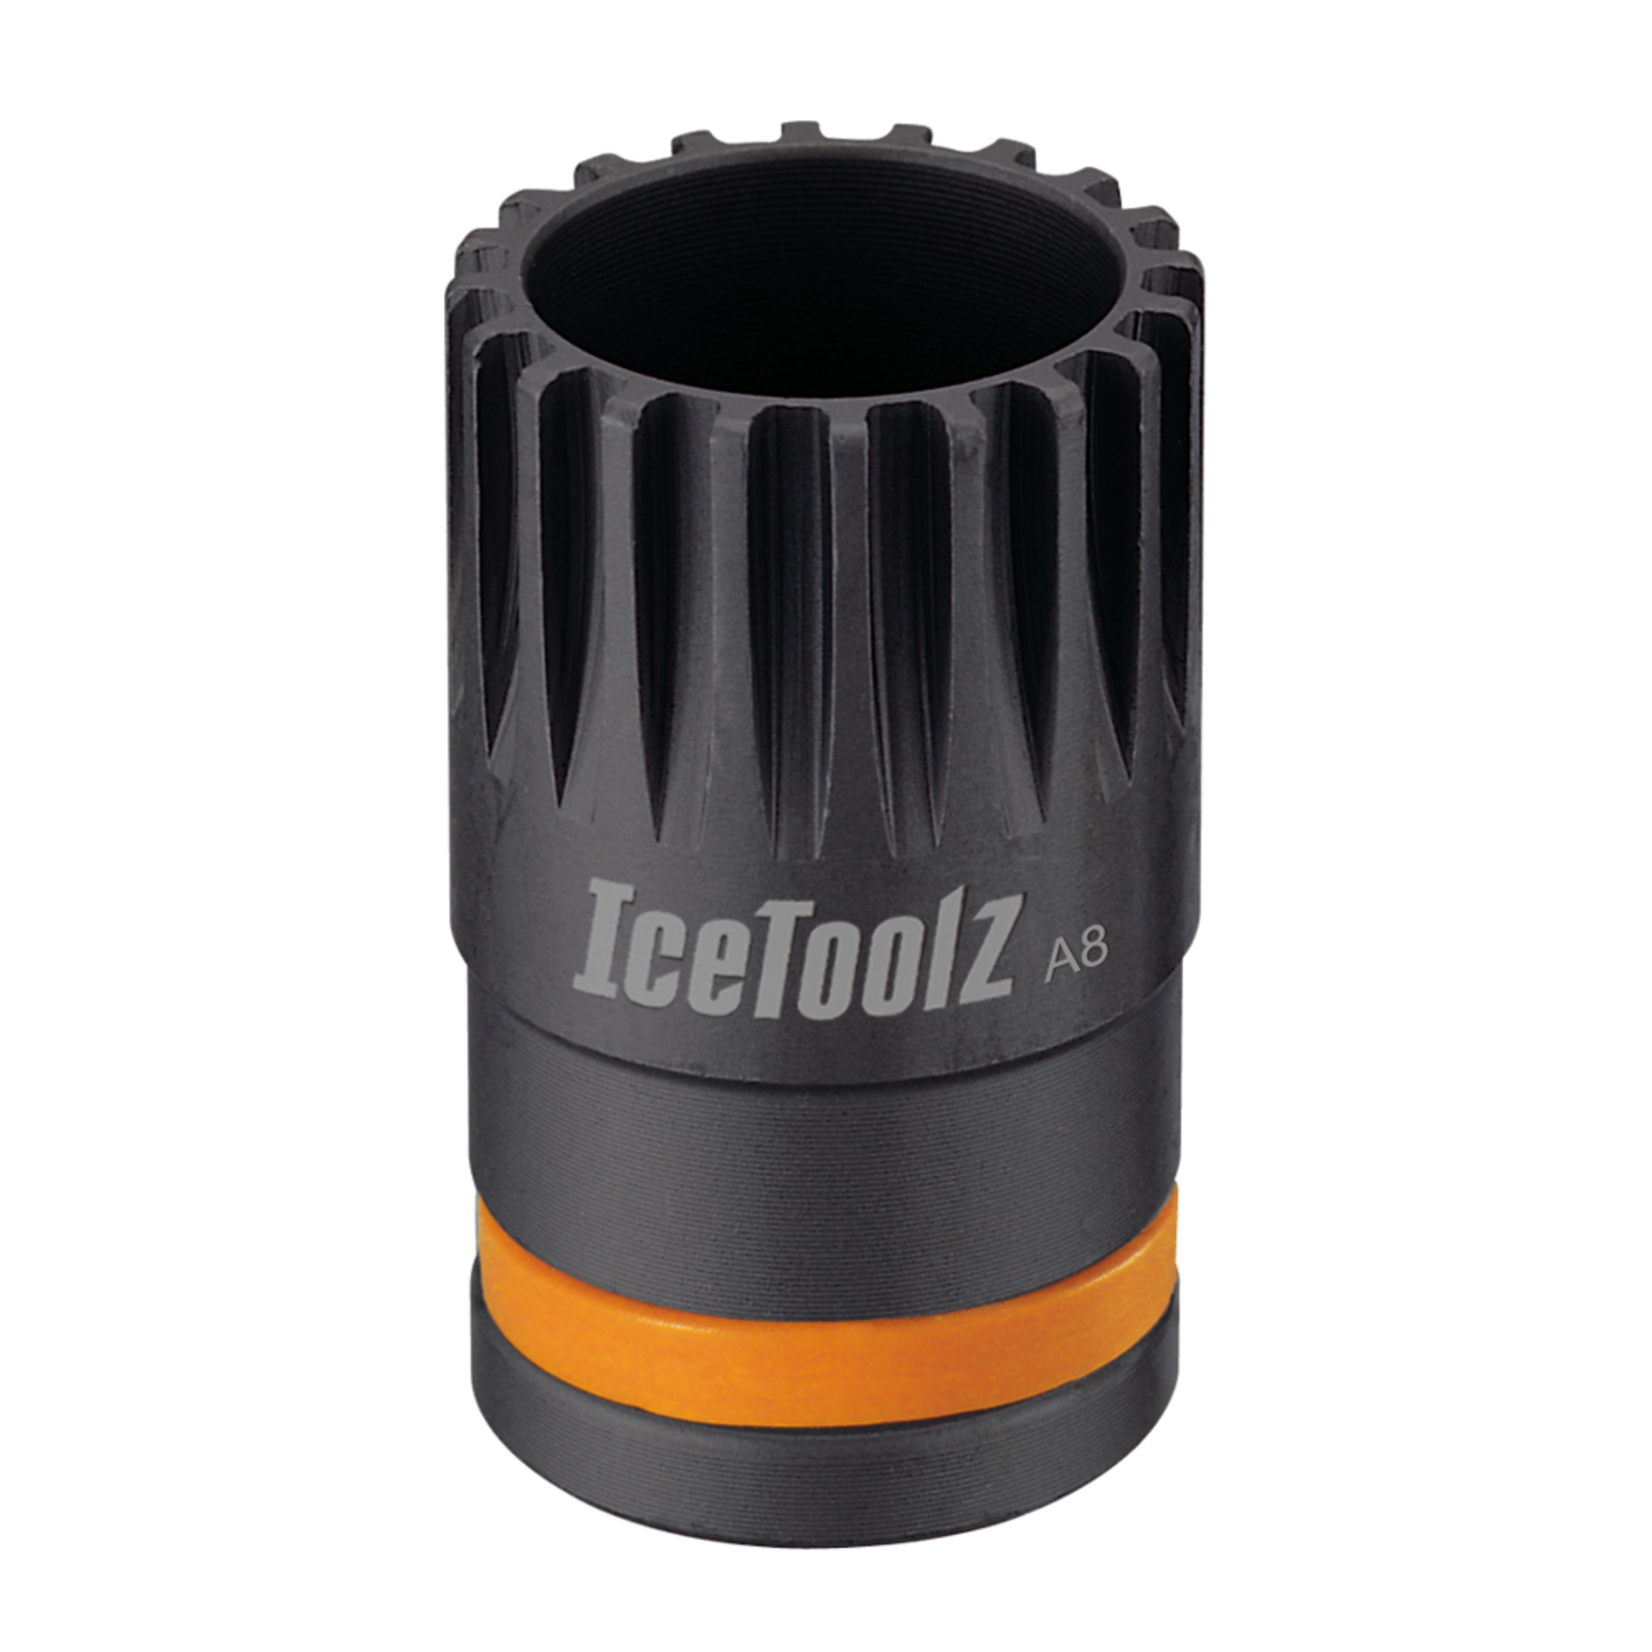 Ice Toolz IceToolz ISIS DLX BB Cup Tool